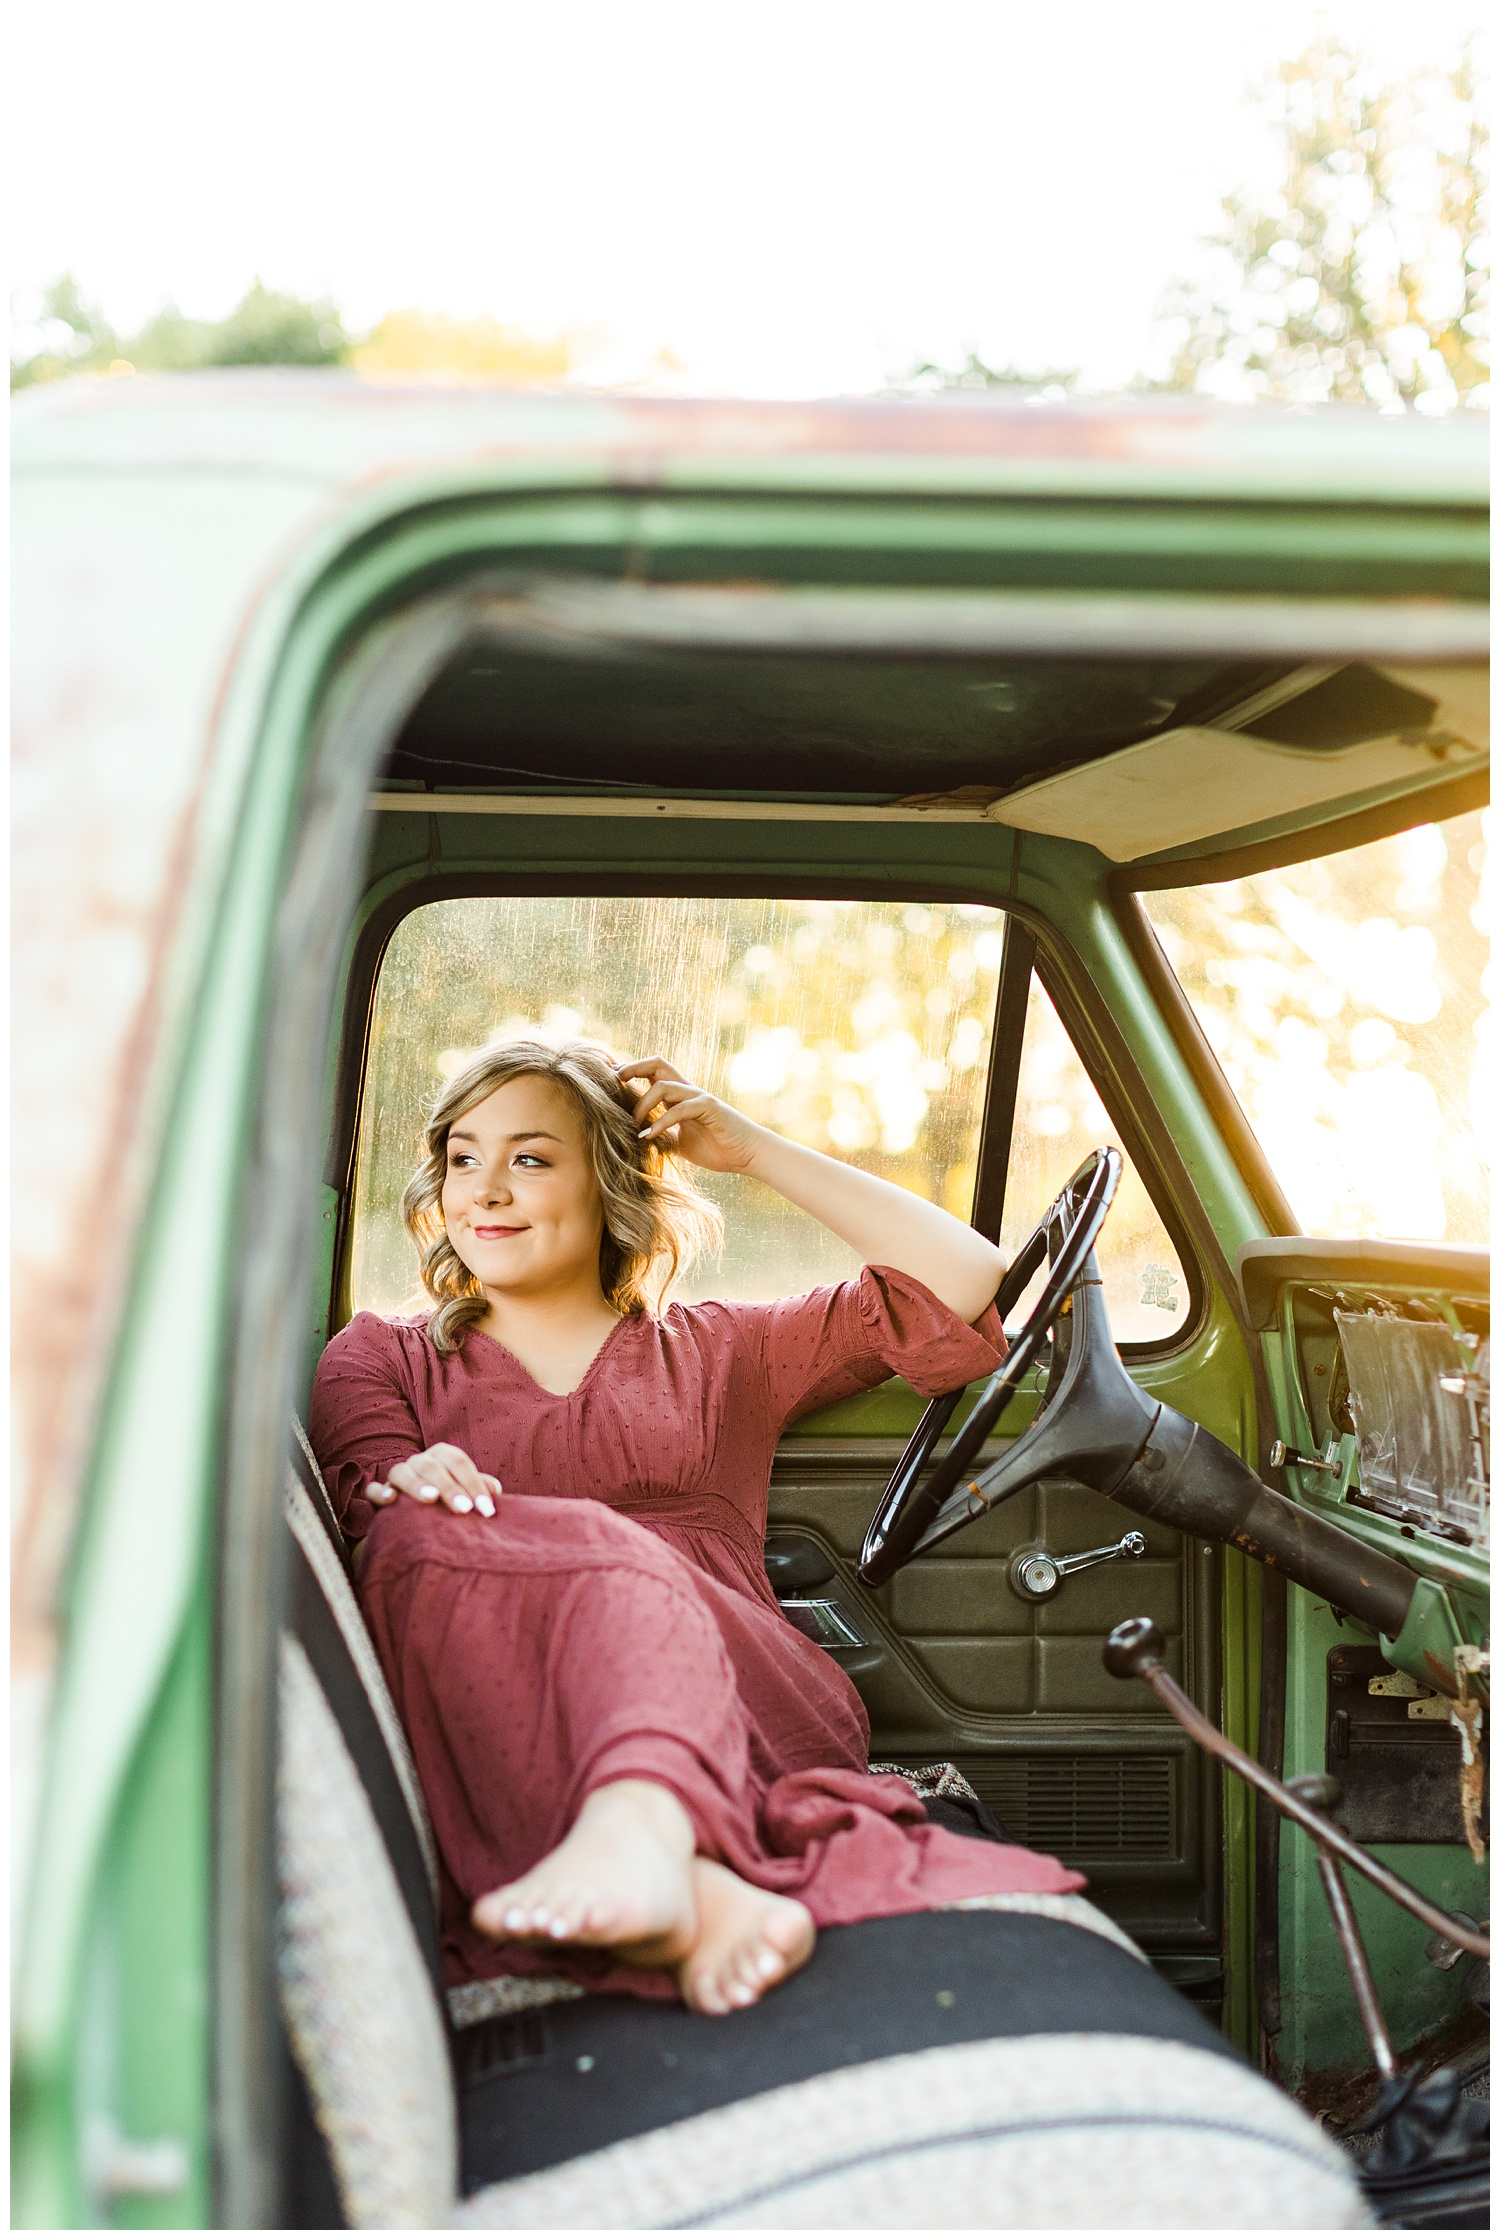 Cloey, wearing a vintage red dress, sits in an old, rusty green truck at golden hour   CB Studio